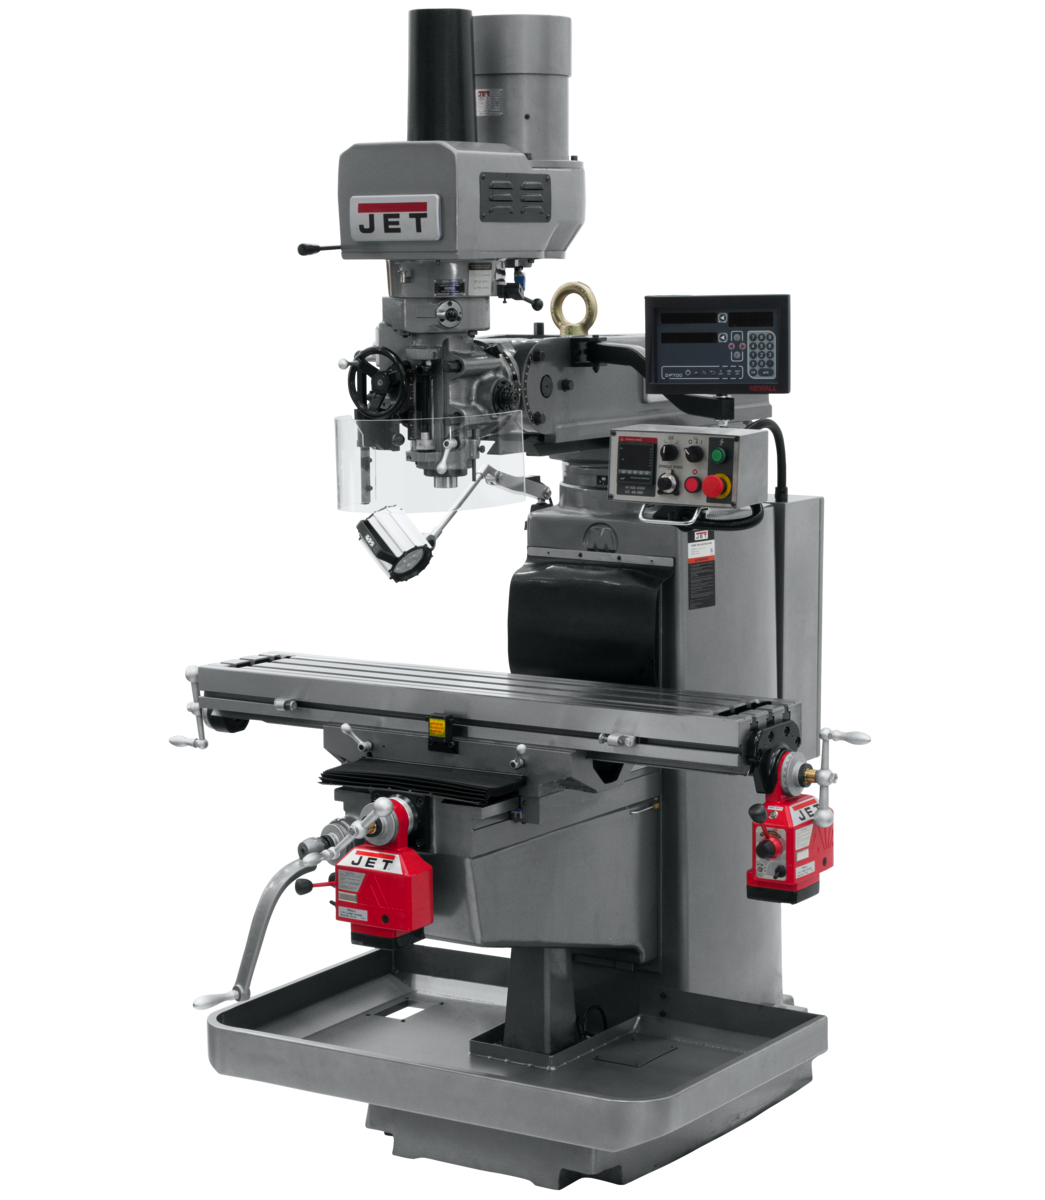 JTM-1050EVS2/230 Mill With 3-Axis Newall DP700 DRO (Quill) With X and Y-Axis Powerfeeds and Air Powered Draw Bar